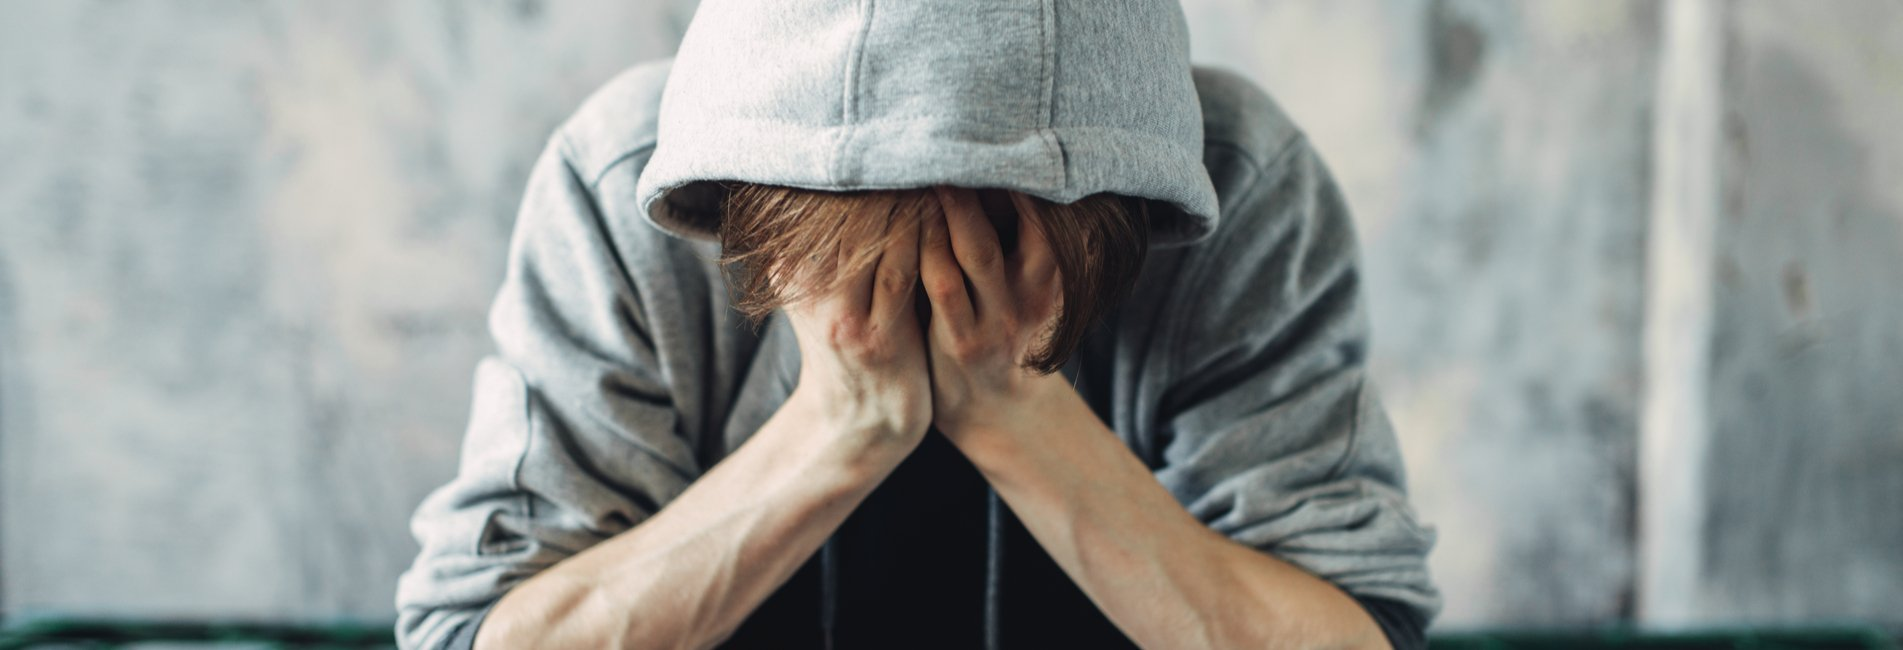 Inhalants Withdrawal and Detox Resurgence – A man struggling with addiction should seek help and learn to recognize withdrawal symptoms of inhalants.